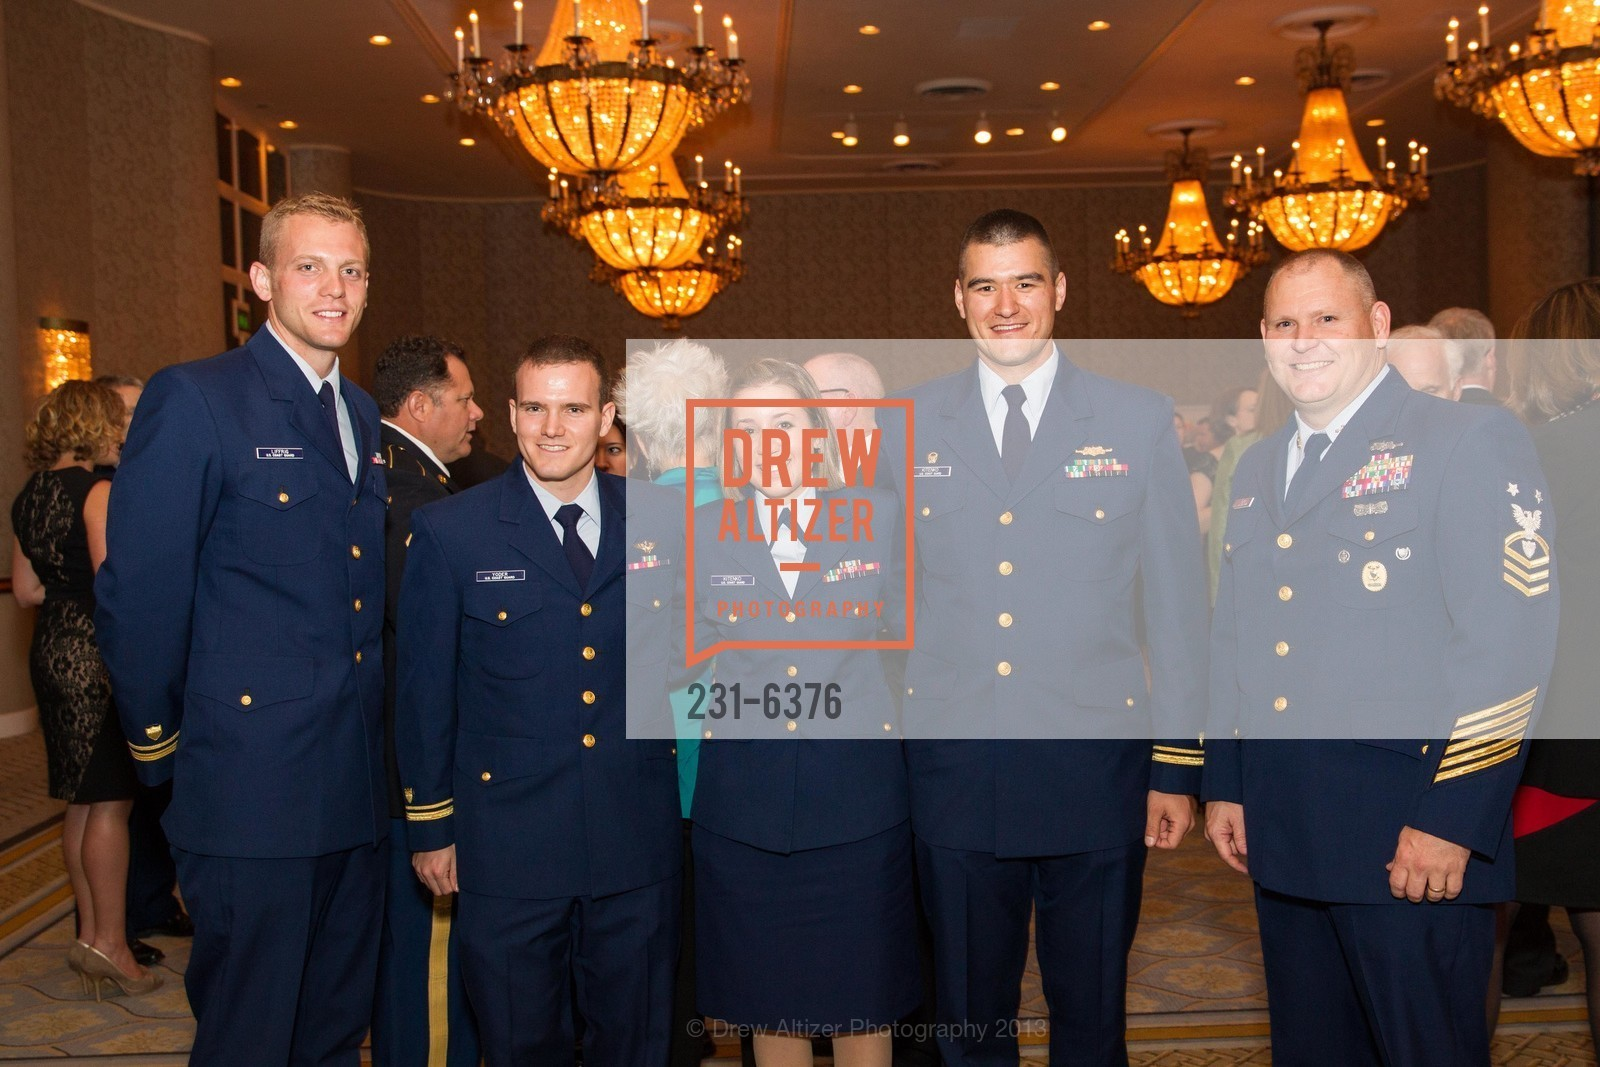 Joseph Liffrig, Rory Yoder, Noelle Kitenko, JG Joshua Kitenko, Rob Bushey, COAST GUARD FOUNDATION Presents Pacific Awards Dinner, US, April 25th, 2013